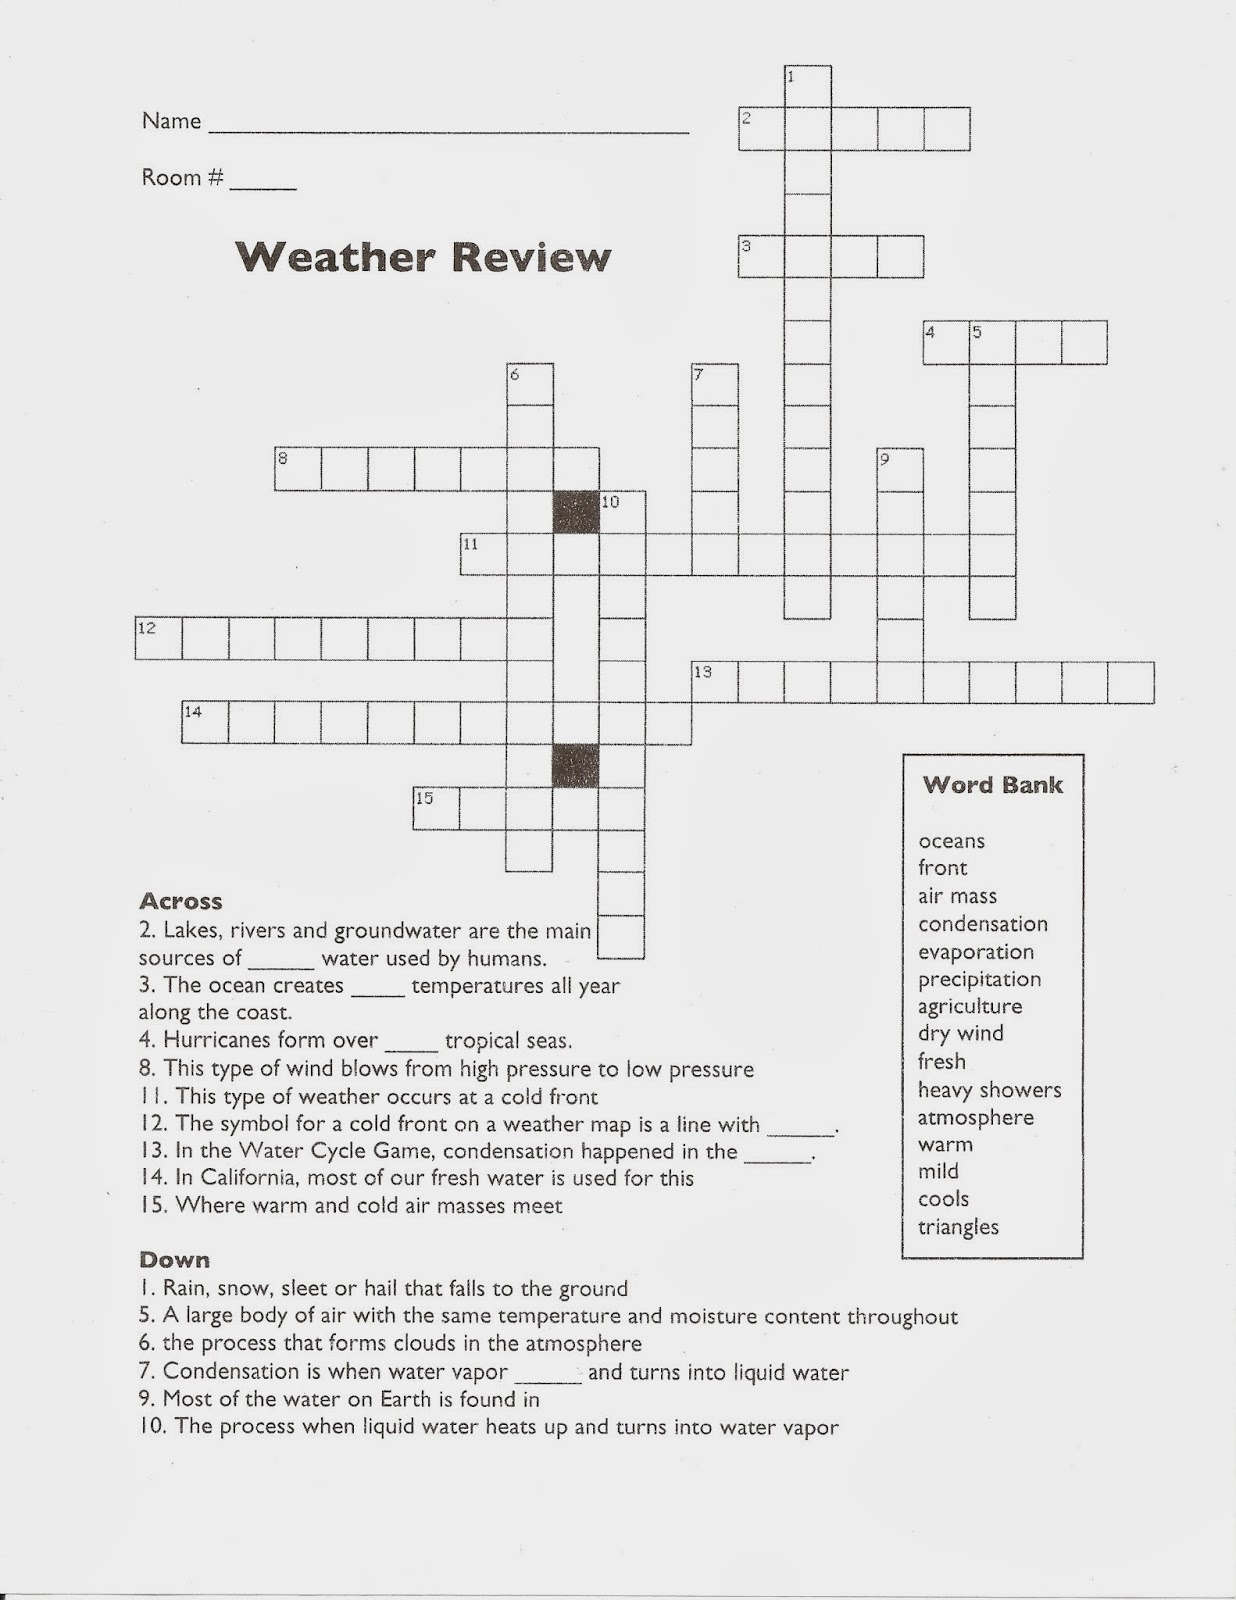 Worksheets Weather And Climate Worksheets weather worksheet new 696 climate worksheets 5th grade los and homework angeles the of